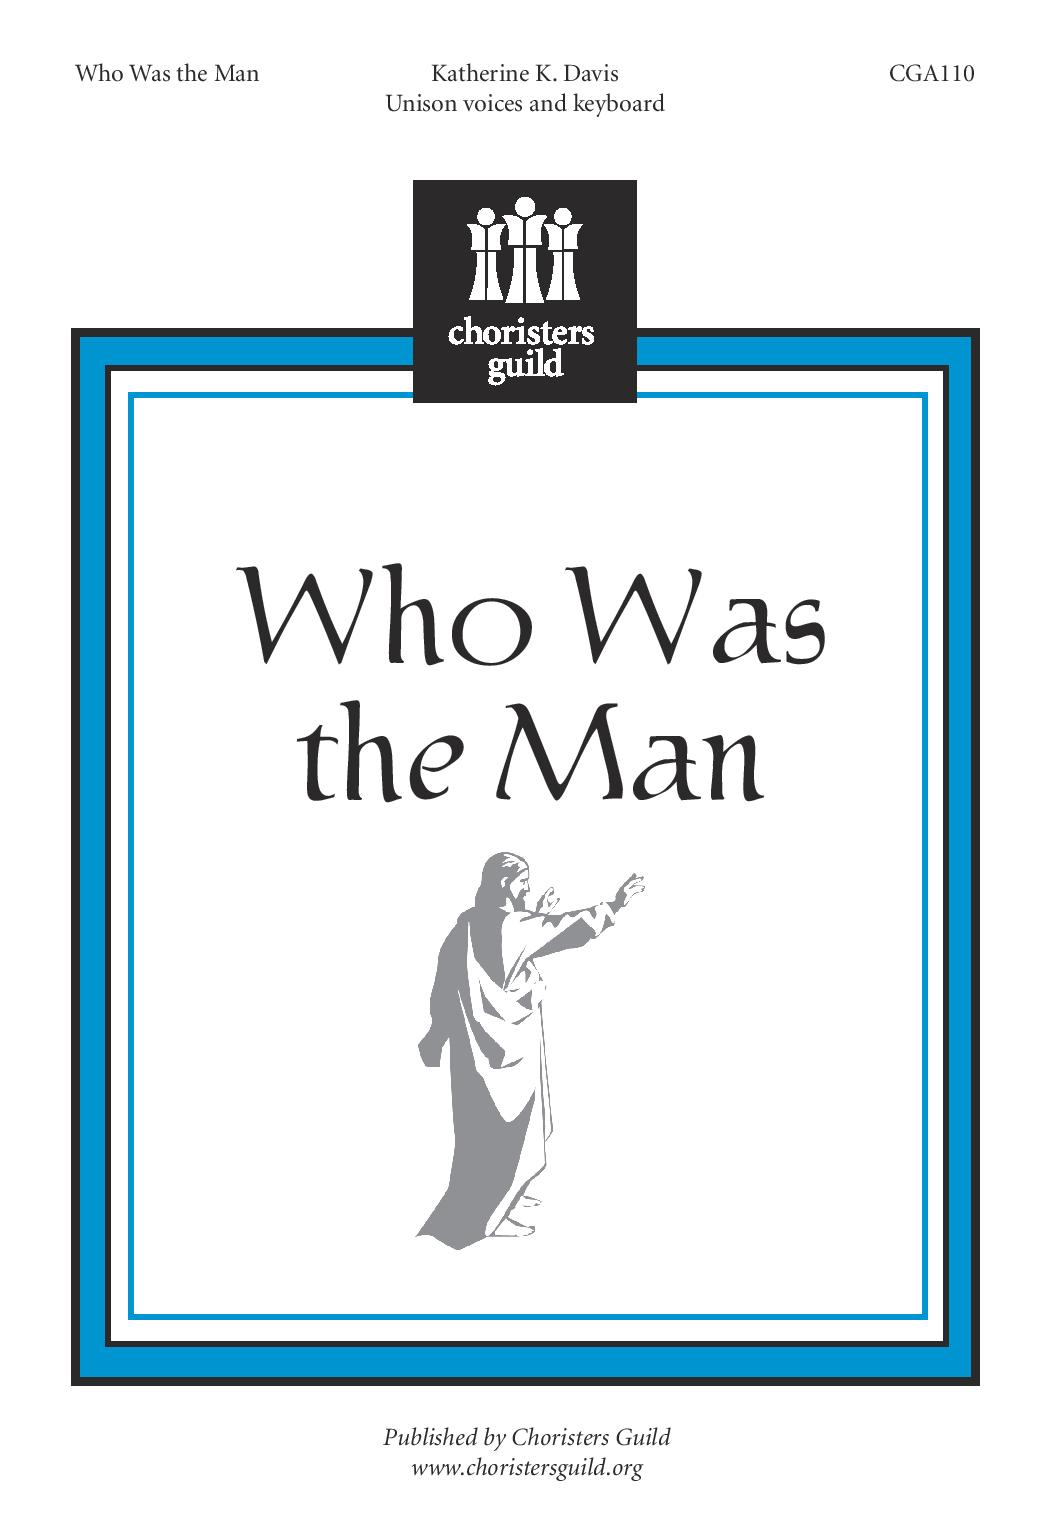 Who Was the Man